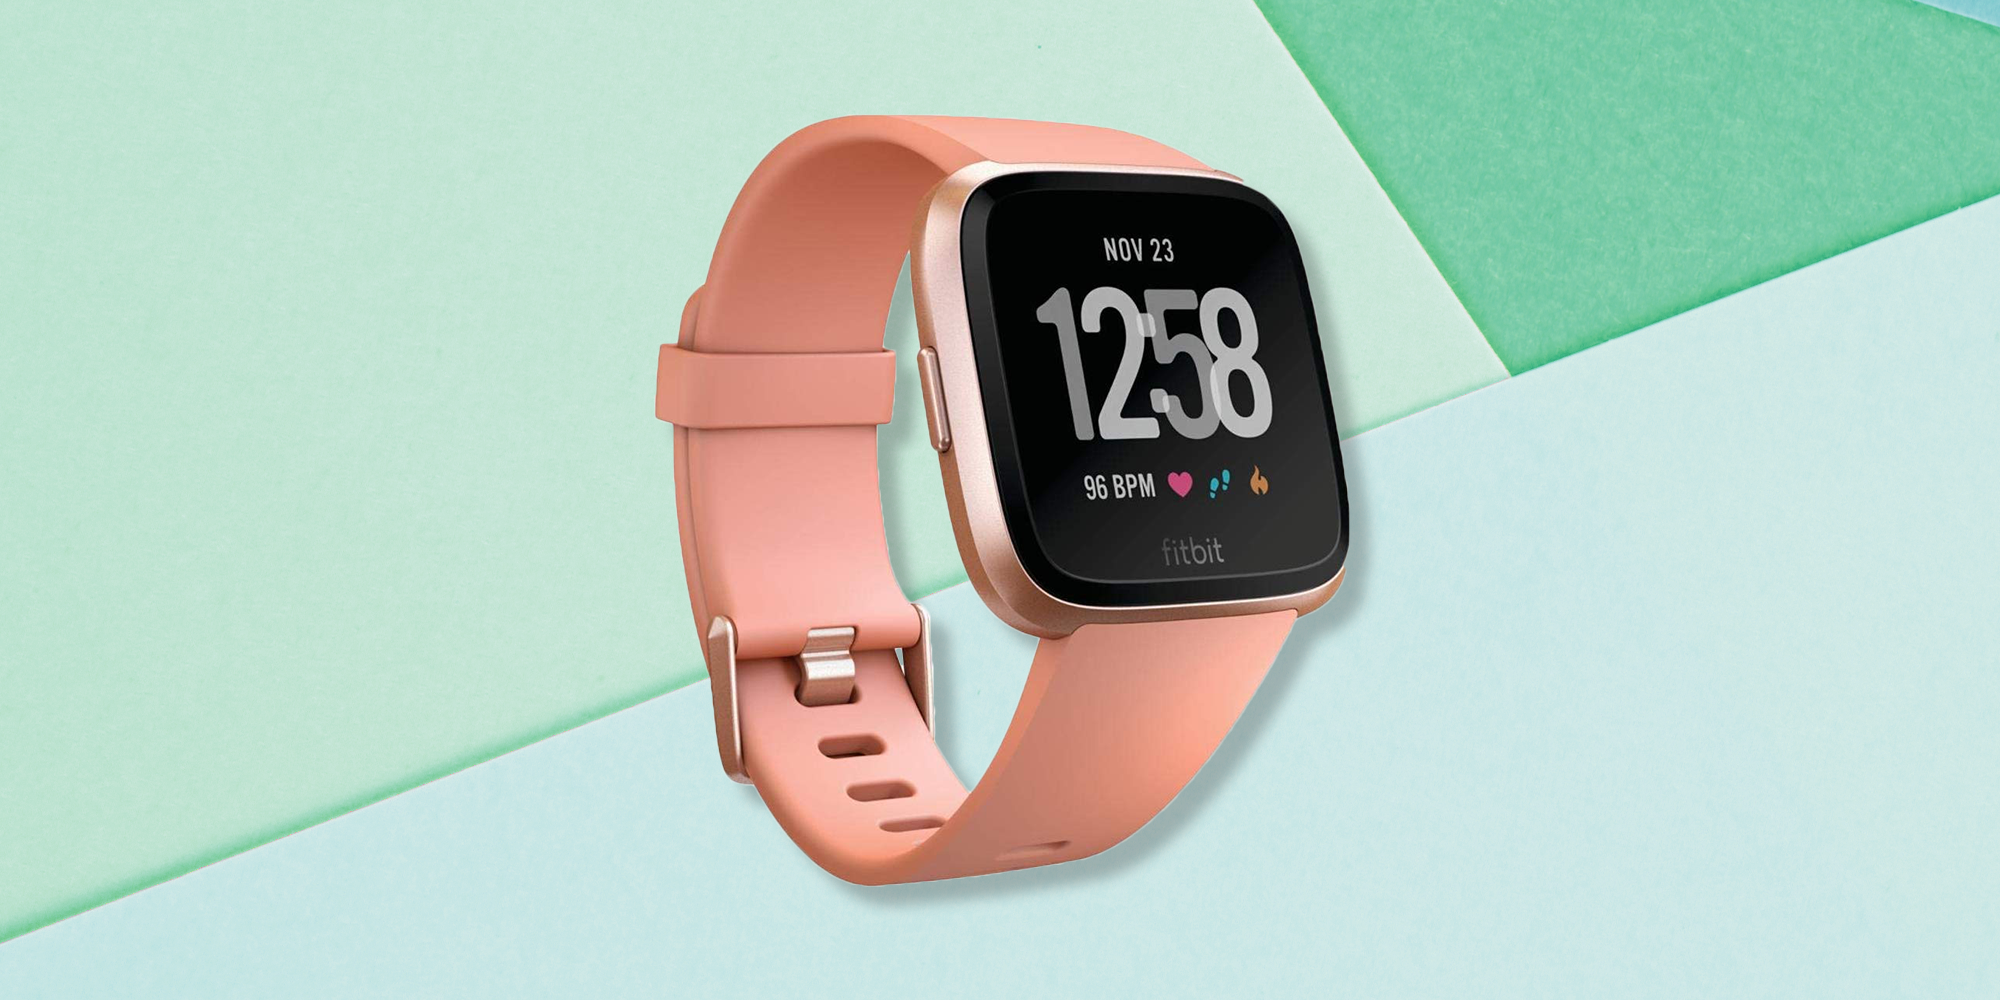 The FitBit Versa Is On Sale For $30 Off On Amazon Right Now